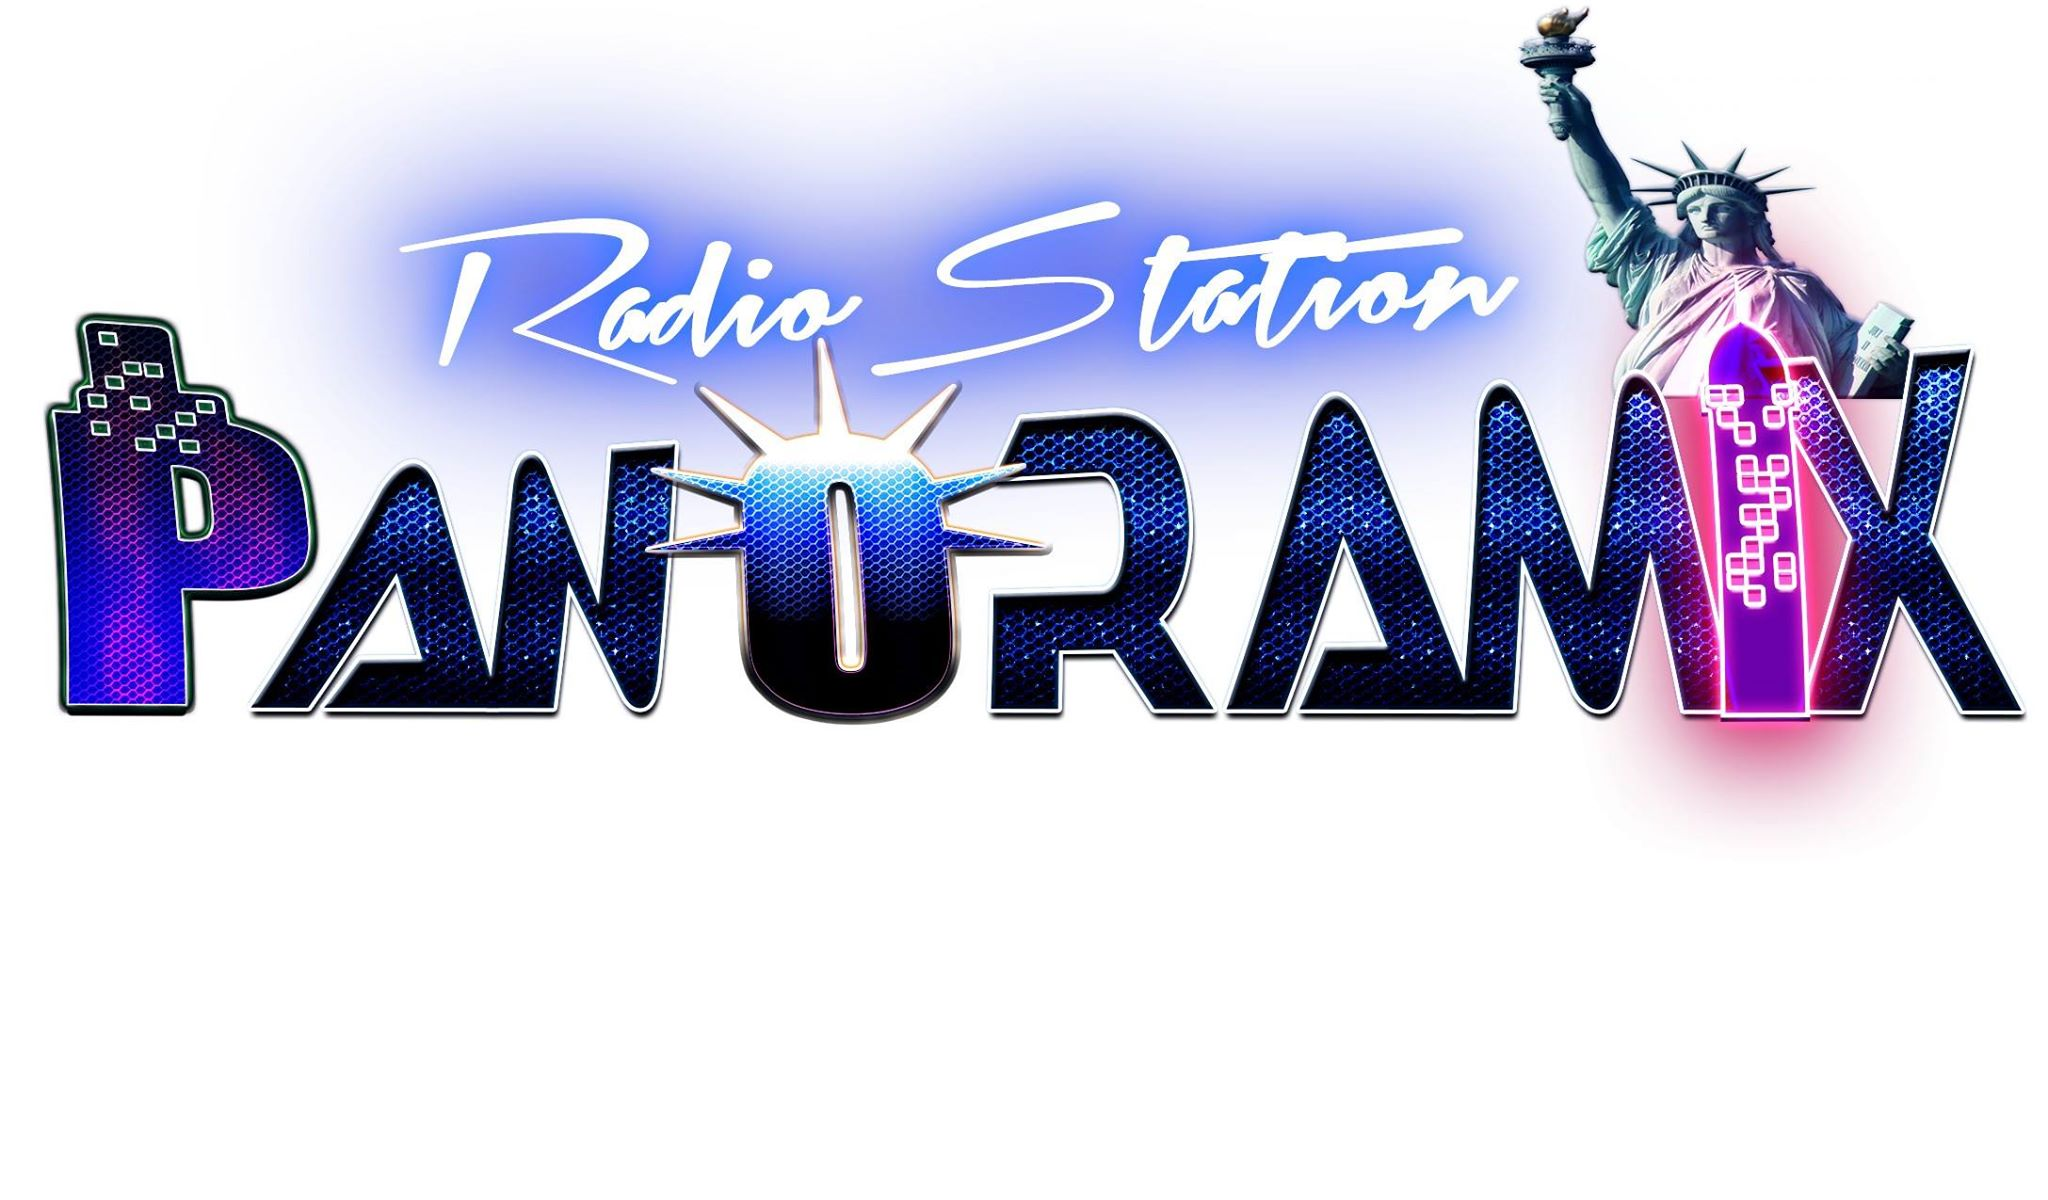 PANORAMIX-RADIO-STATION.COM